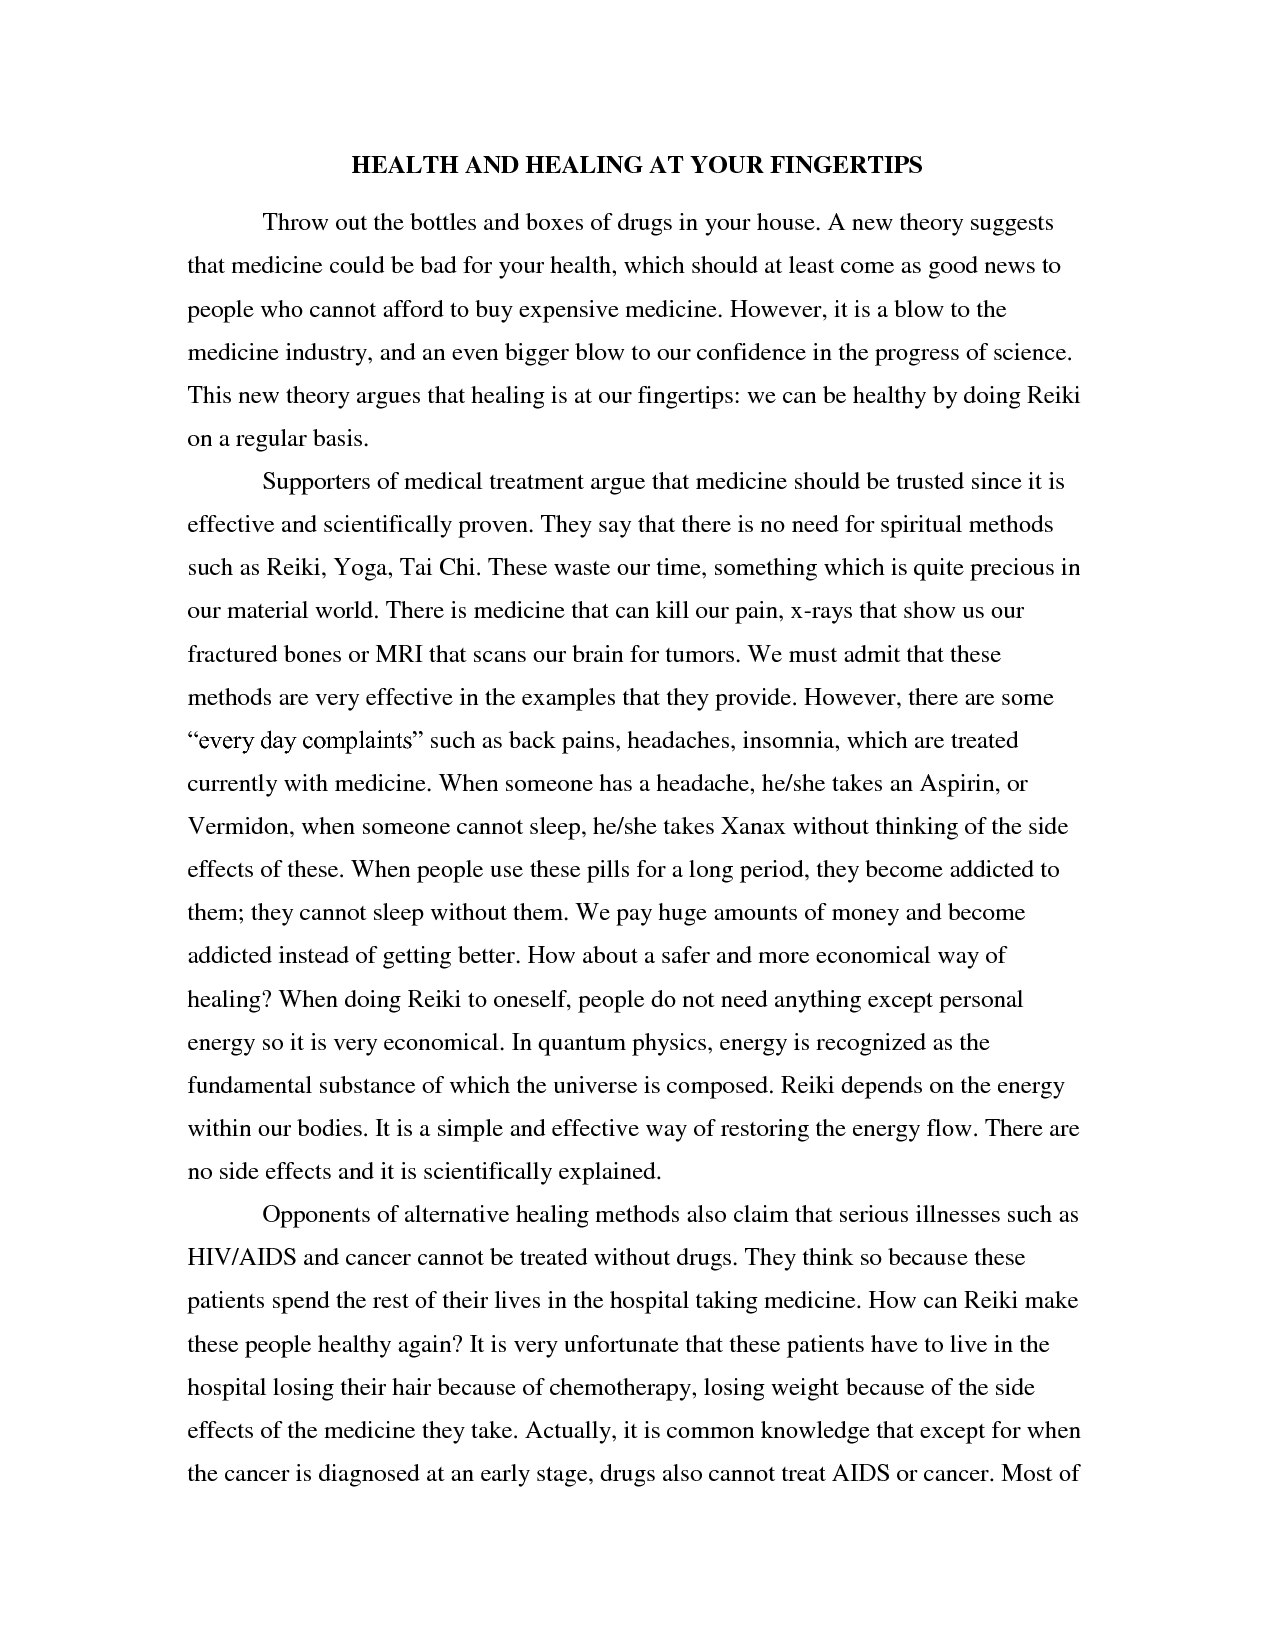 016 Mentor Argument Essay Page How To Write Good Argumentatives Astounding Argumentative Examples Ap Lang Sample Pdf Download For Middle School Full